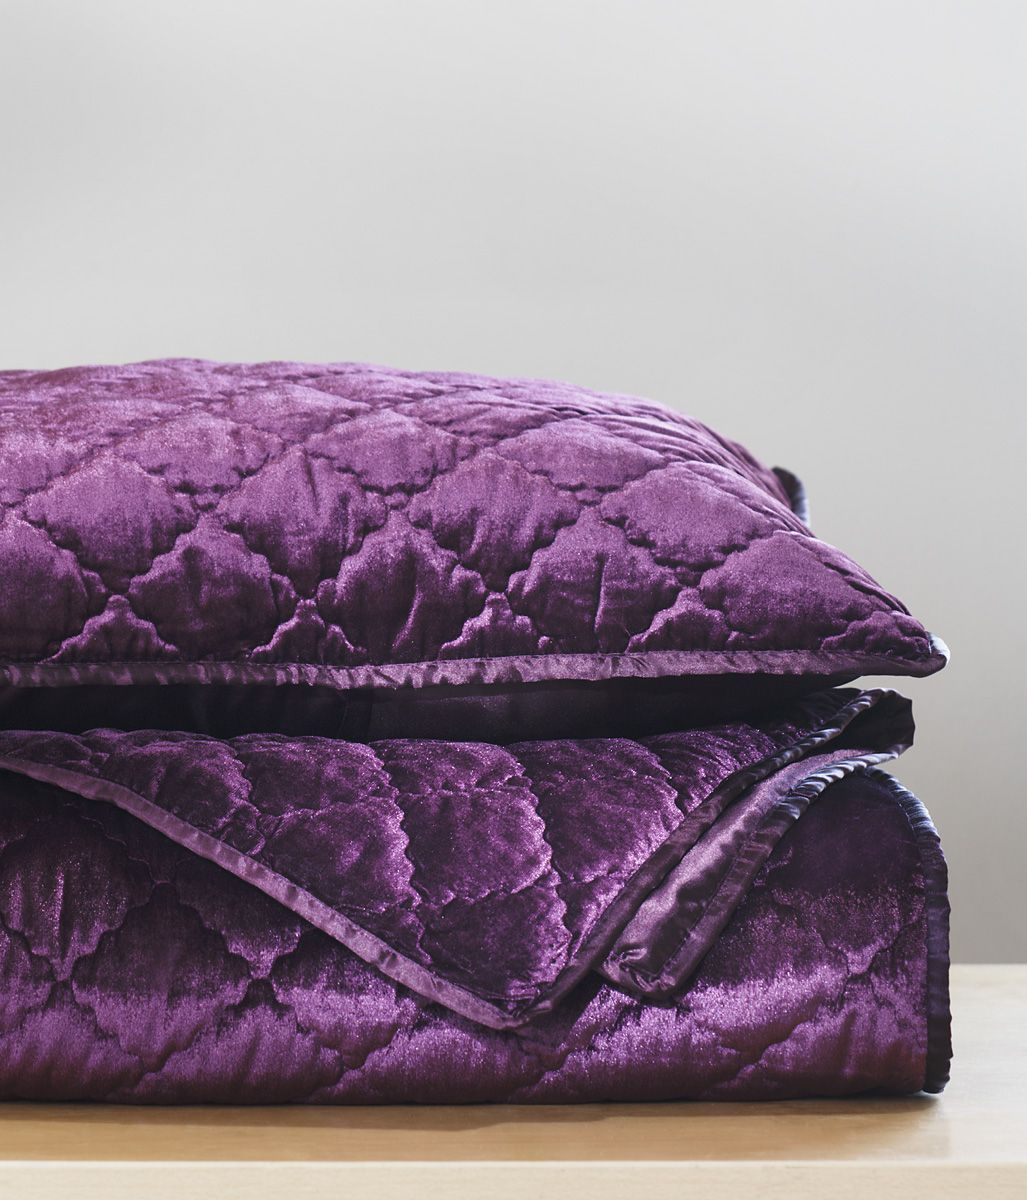 Add Luxury To Your Bedroom With Our Plum Velvet Coverlet. #AnnasLinens  #Purple